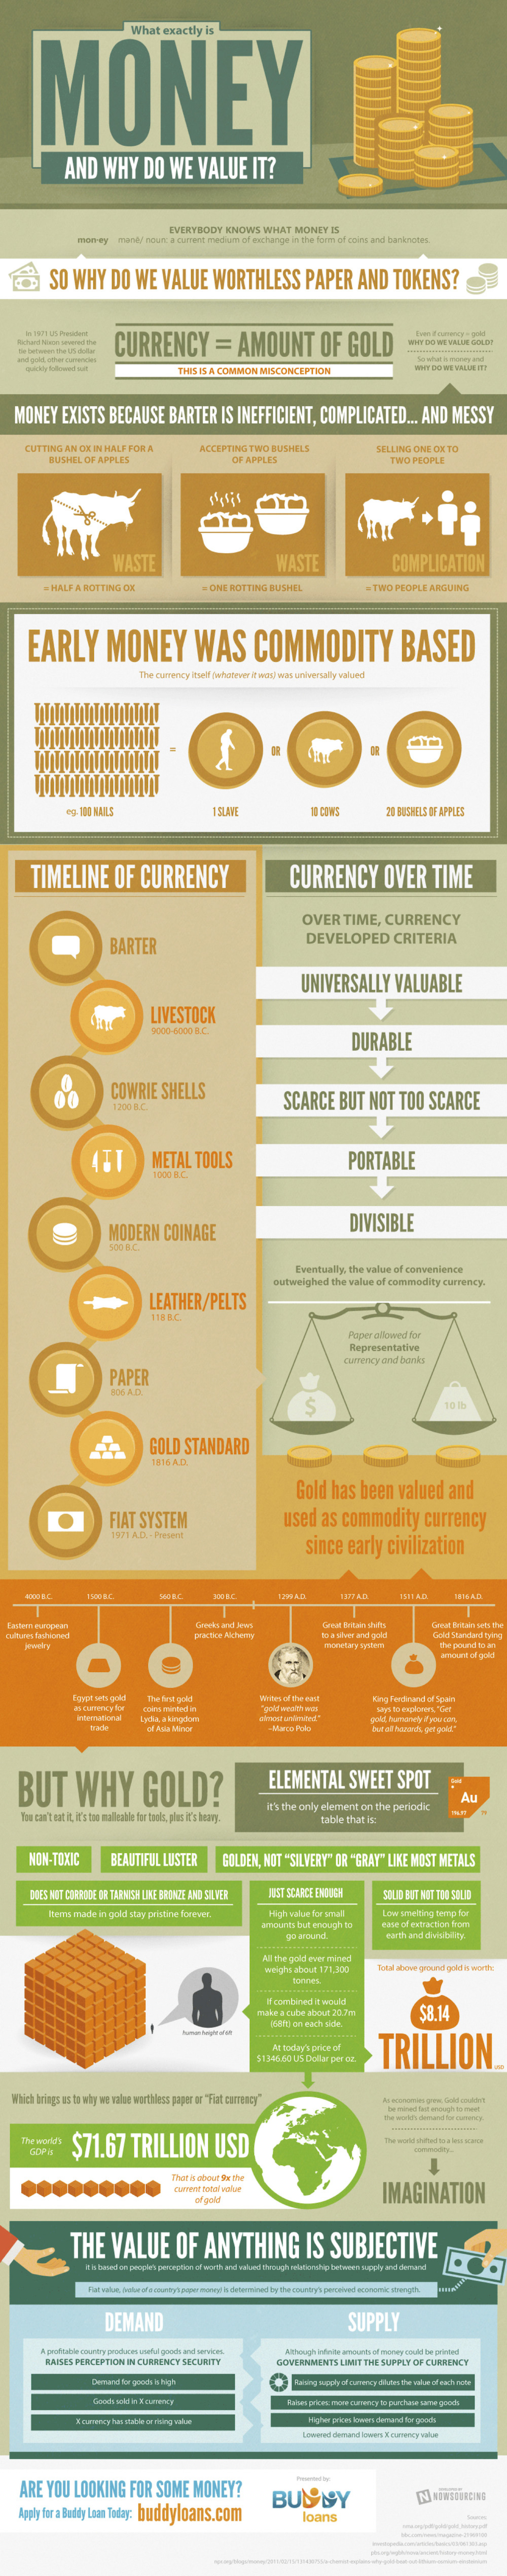 What Exactly is Money and Why Do We Value It? Infographic